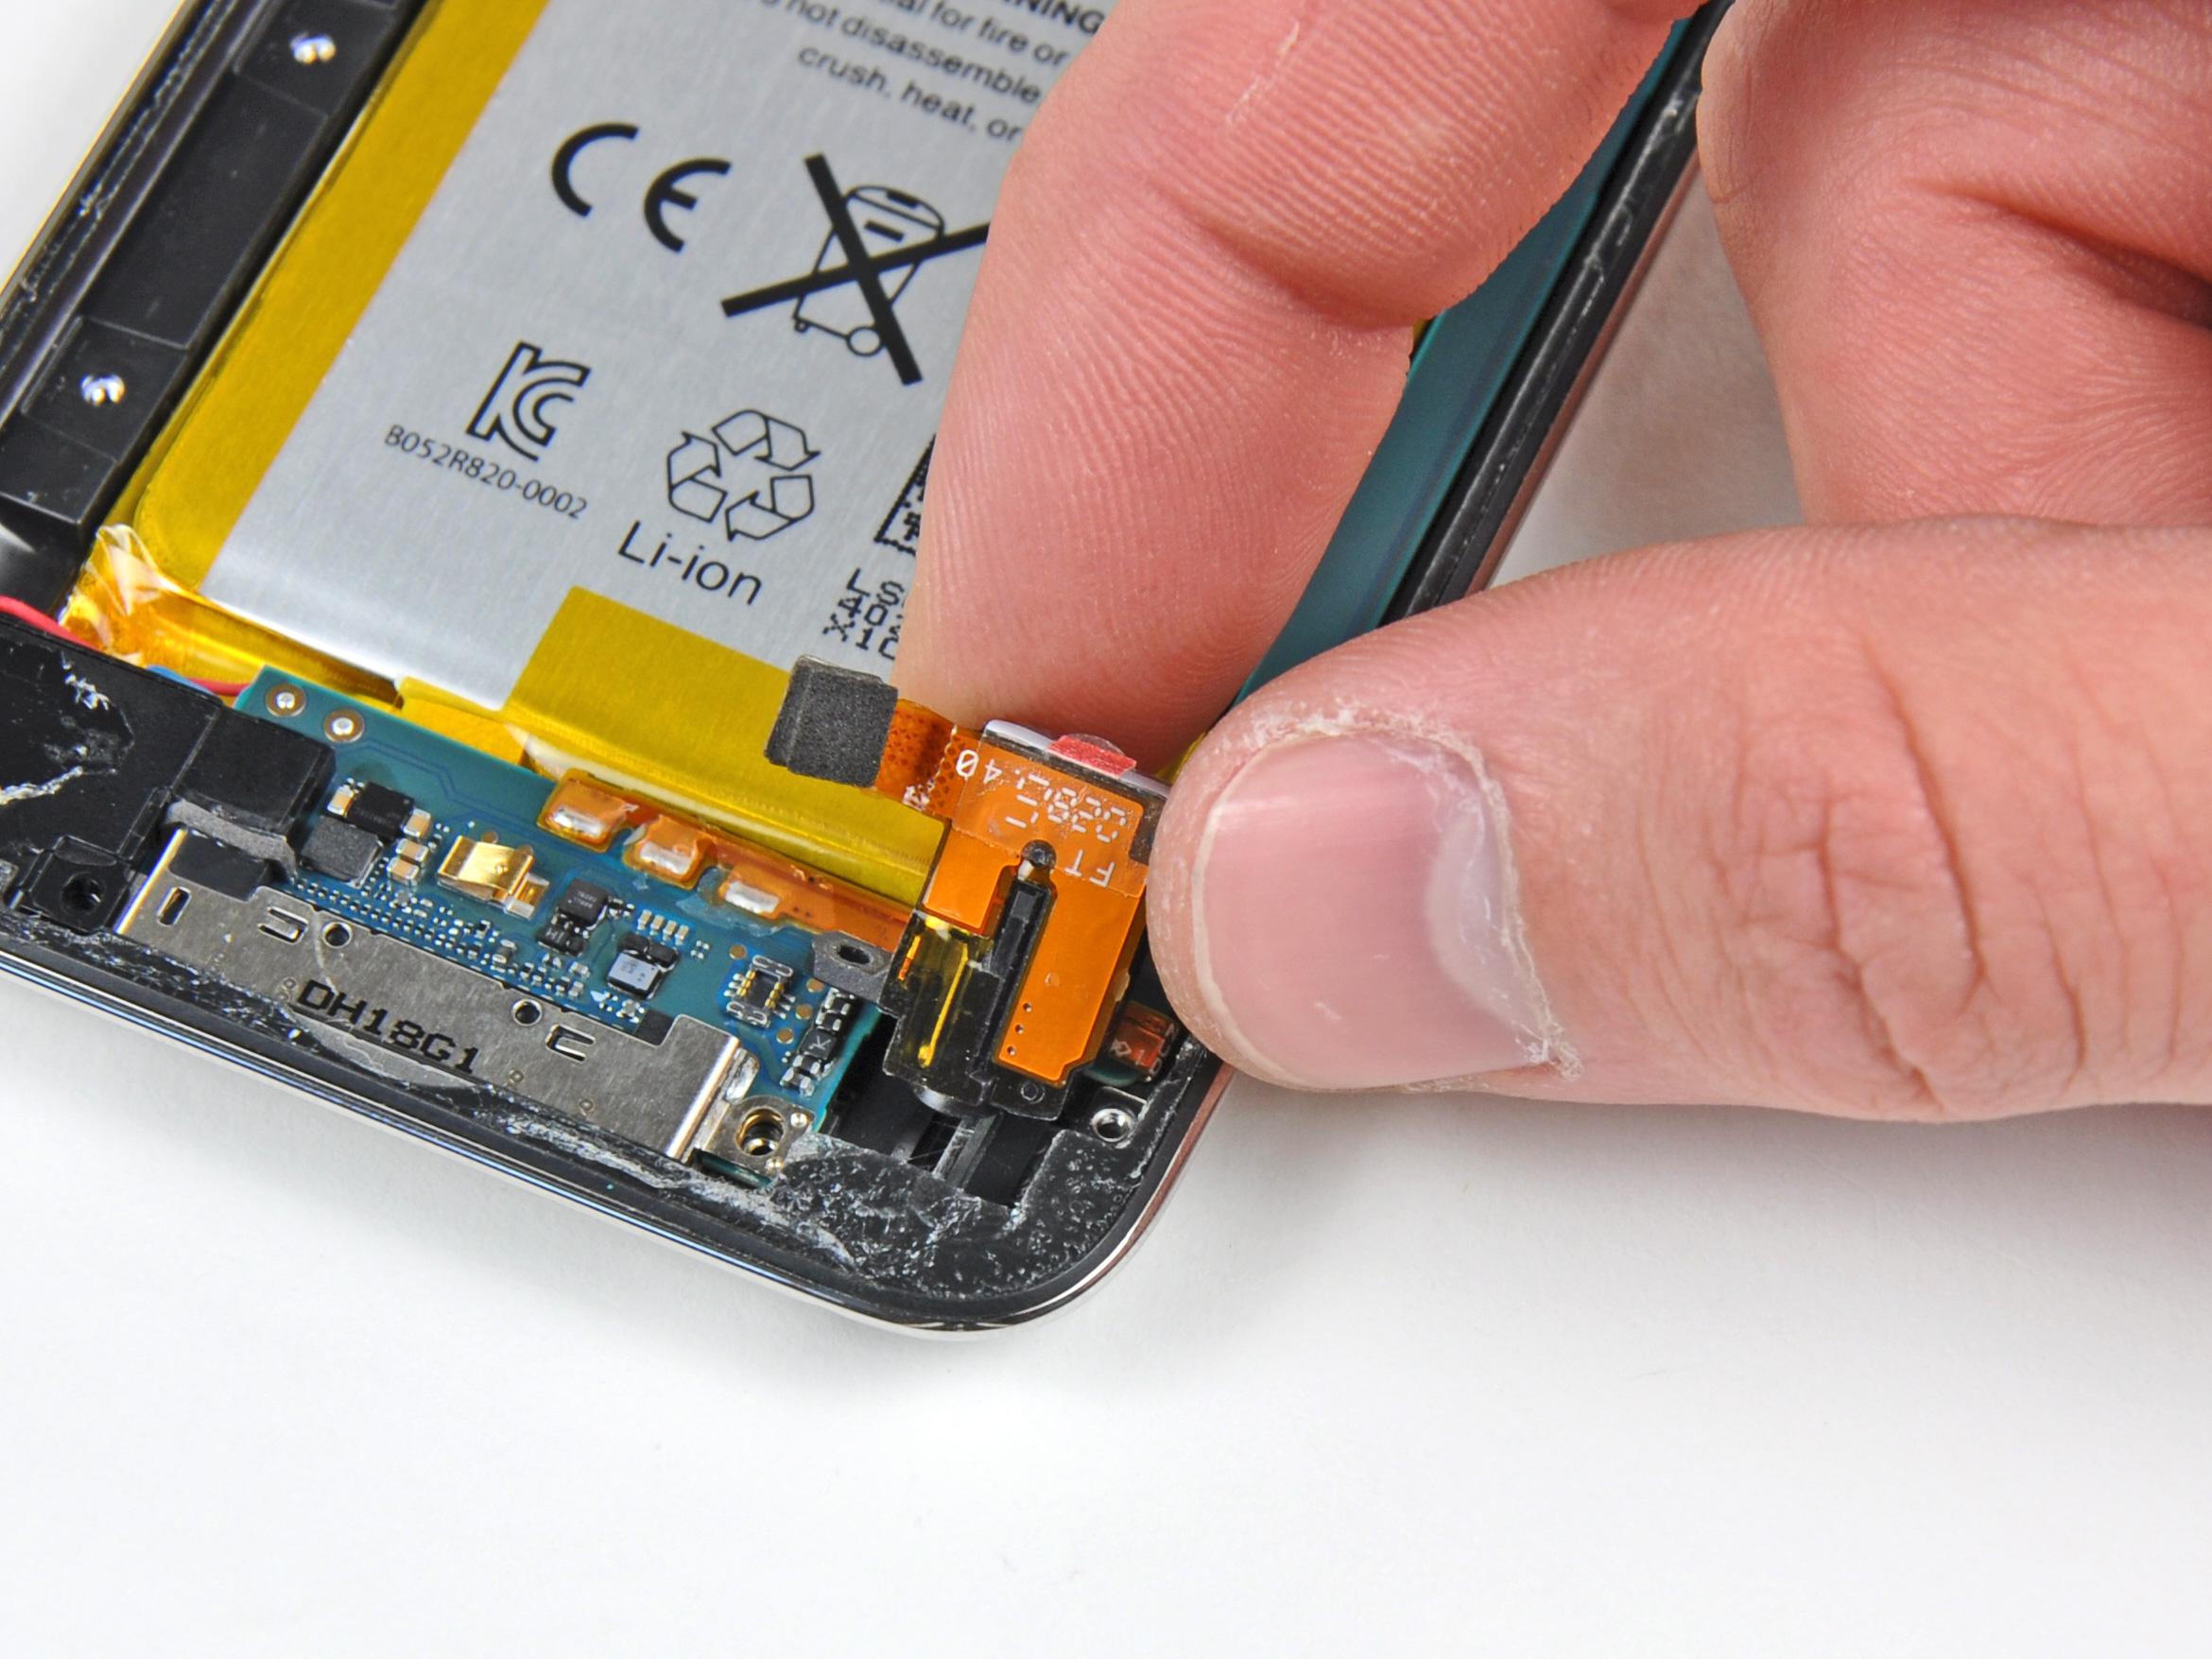 Ipod Touch 4th Generation Headphone Jack Replacement Ifixit Repair 5 Wiring Diagram Guide